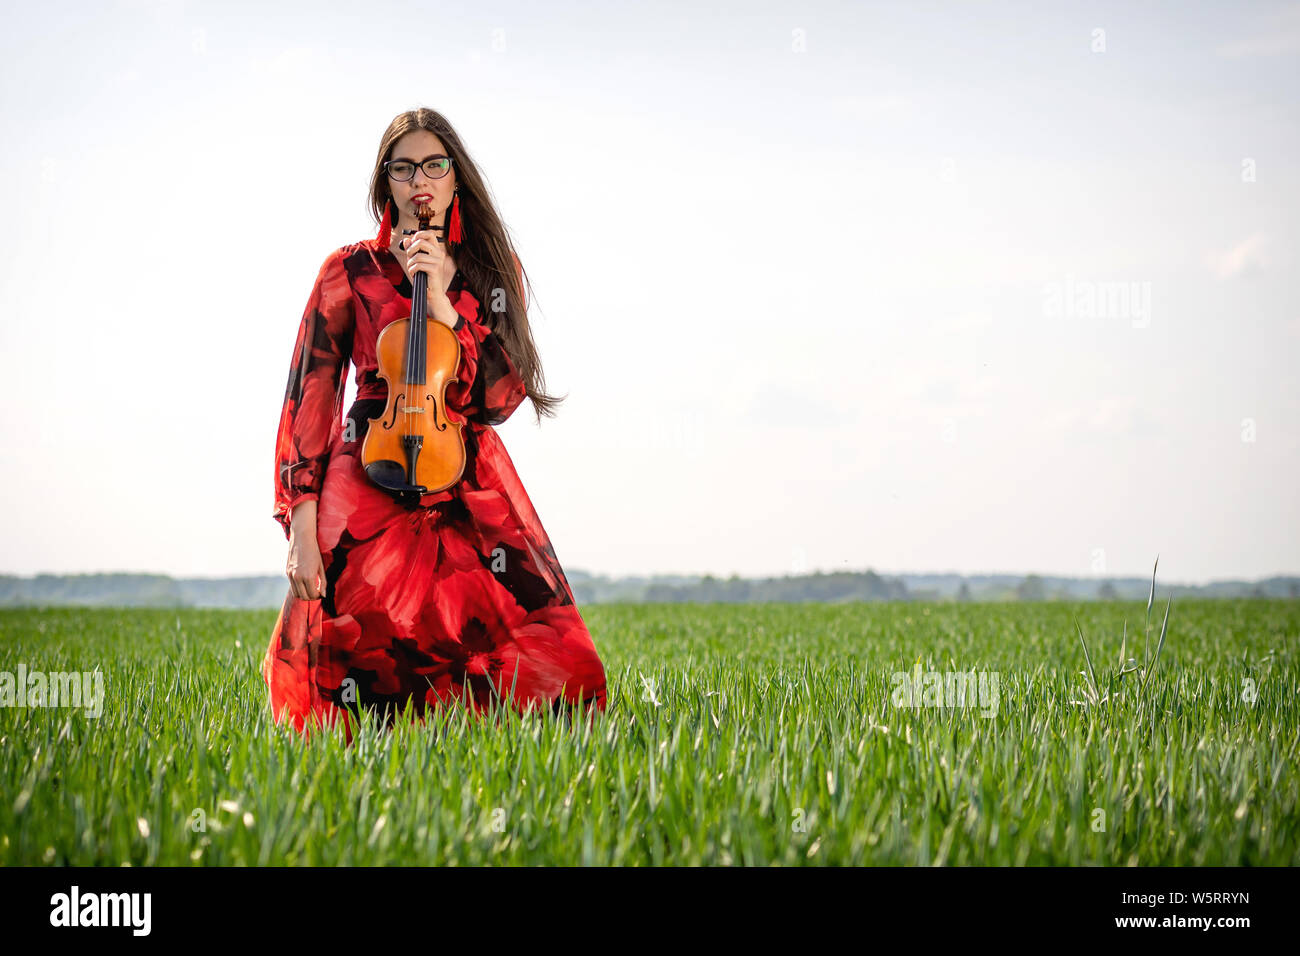 Young woman in red dress with violin in green meadow. Stock Photo